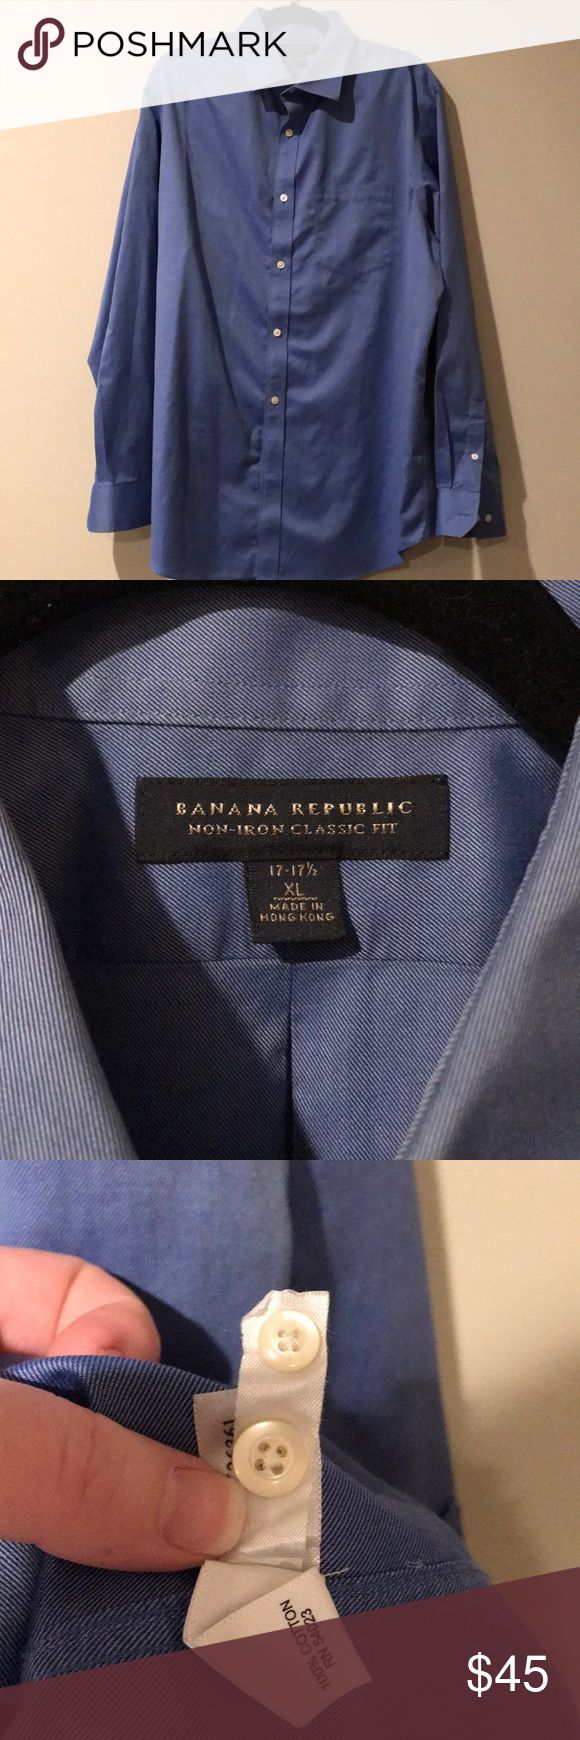 Men's Banana Republic Non-Iron Shirt Very nice, classic fit, non-iron men's button down shirt. Cobalt blue. Missing the bottom button, but two additional buttons are sewn into the interior of the shirt. Size XL 17-17 1/2. Smoke free home. Banana Republic Shirts Dress Shirts